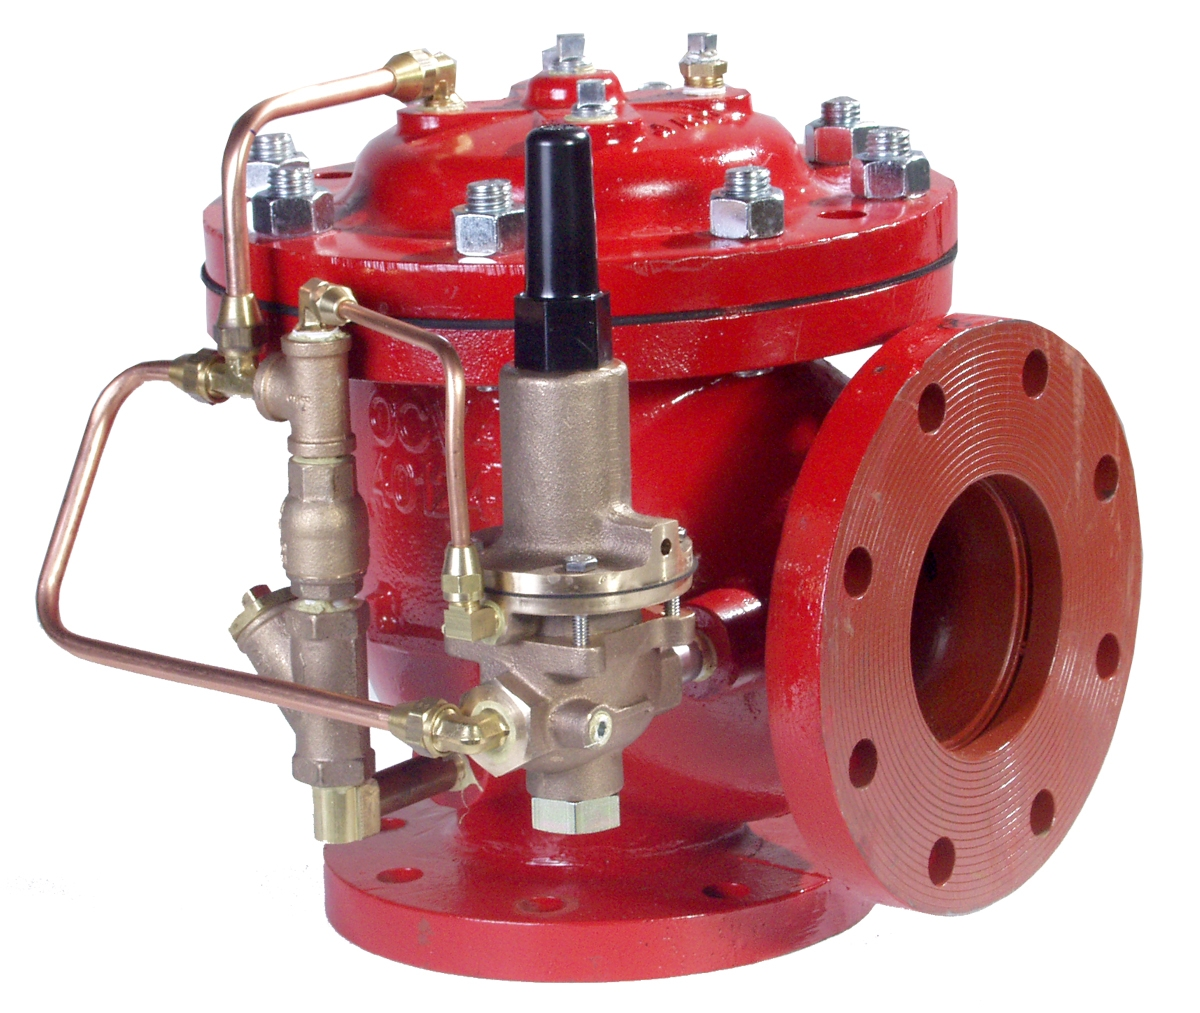 Fire Pressure Pump Relief Valve